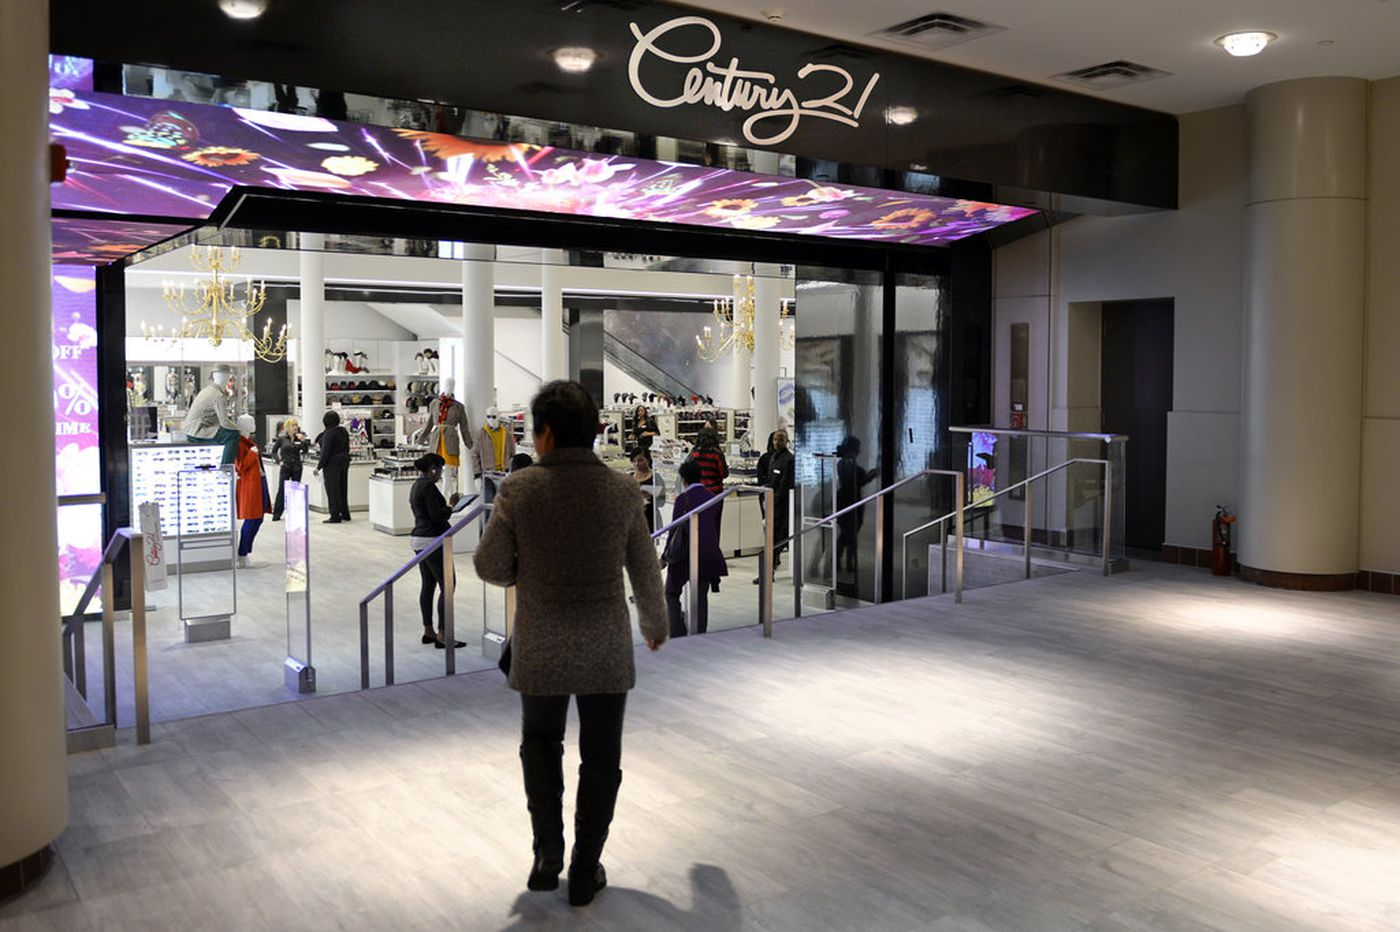 Luxury discount retailer Century 21 is going out of business — shuttering one end of Philadelphia's Fashion District